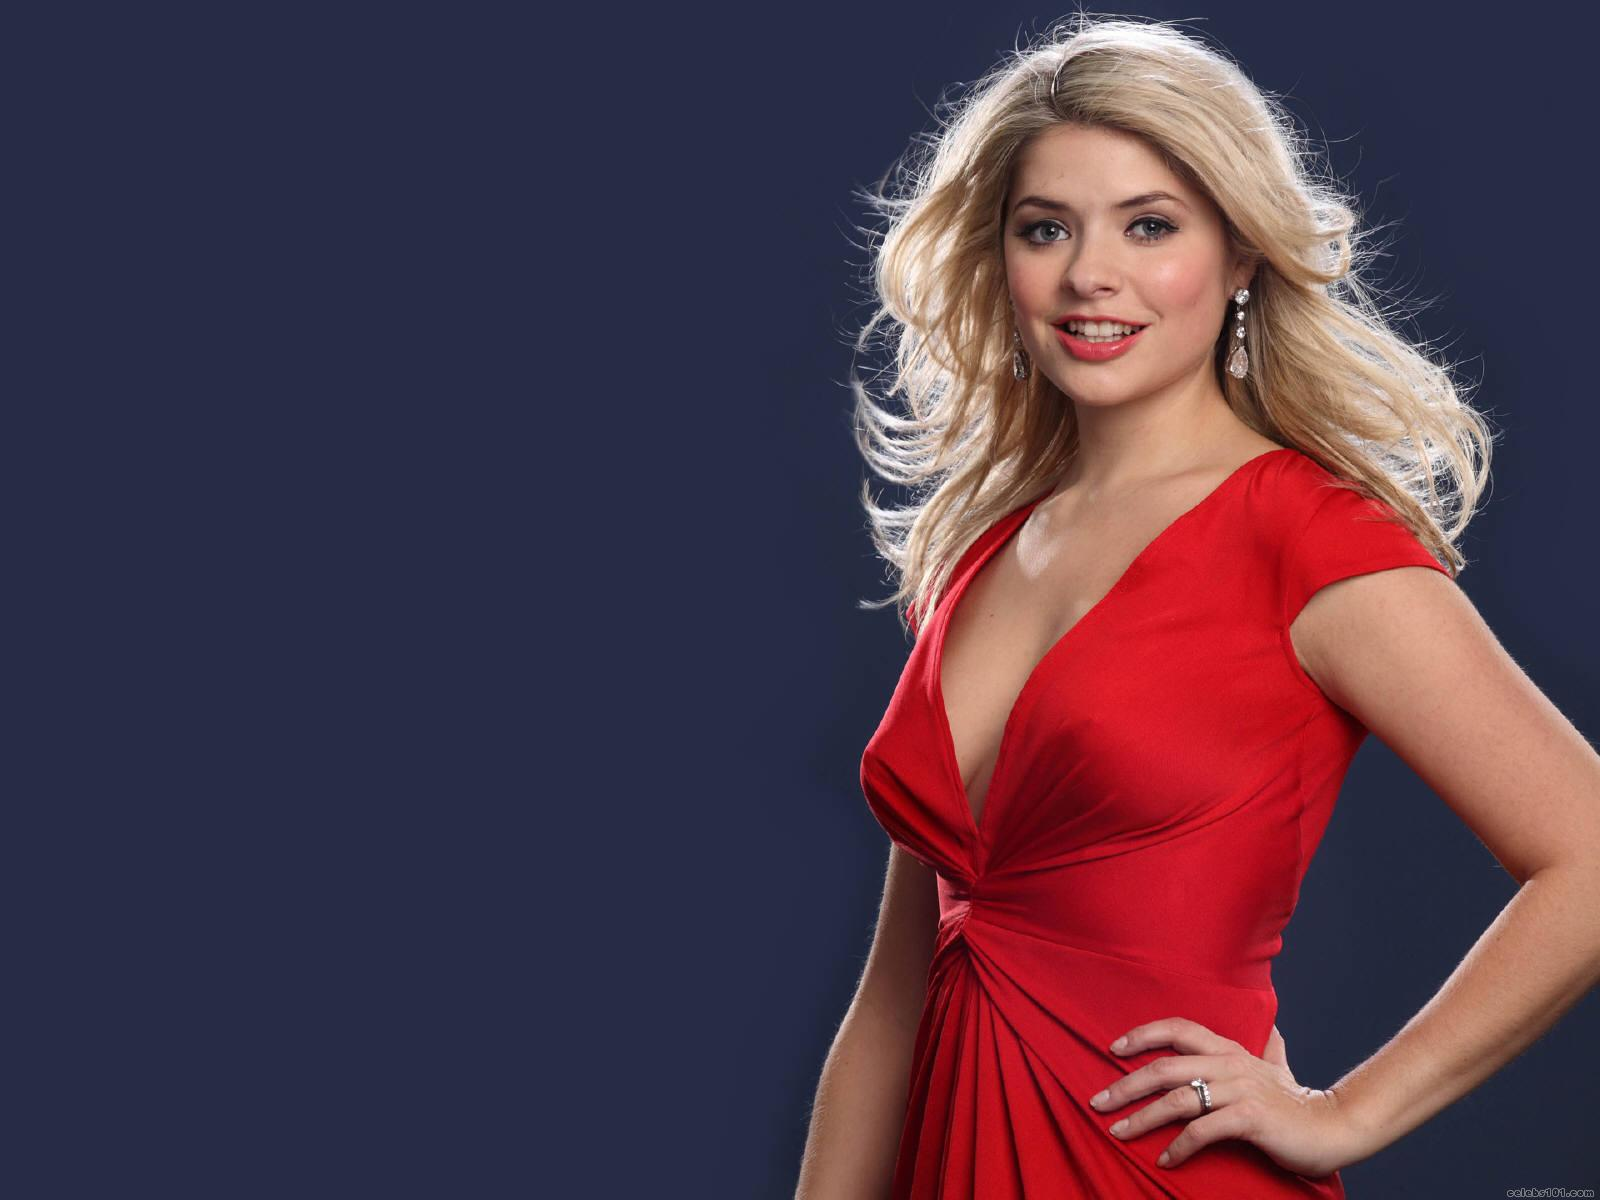 holly willoughby high quality wallpaper size 1600x1200 of